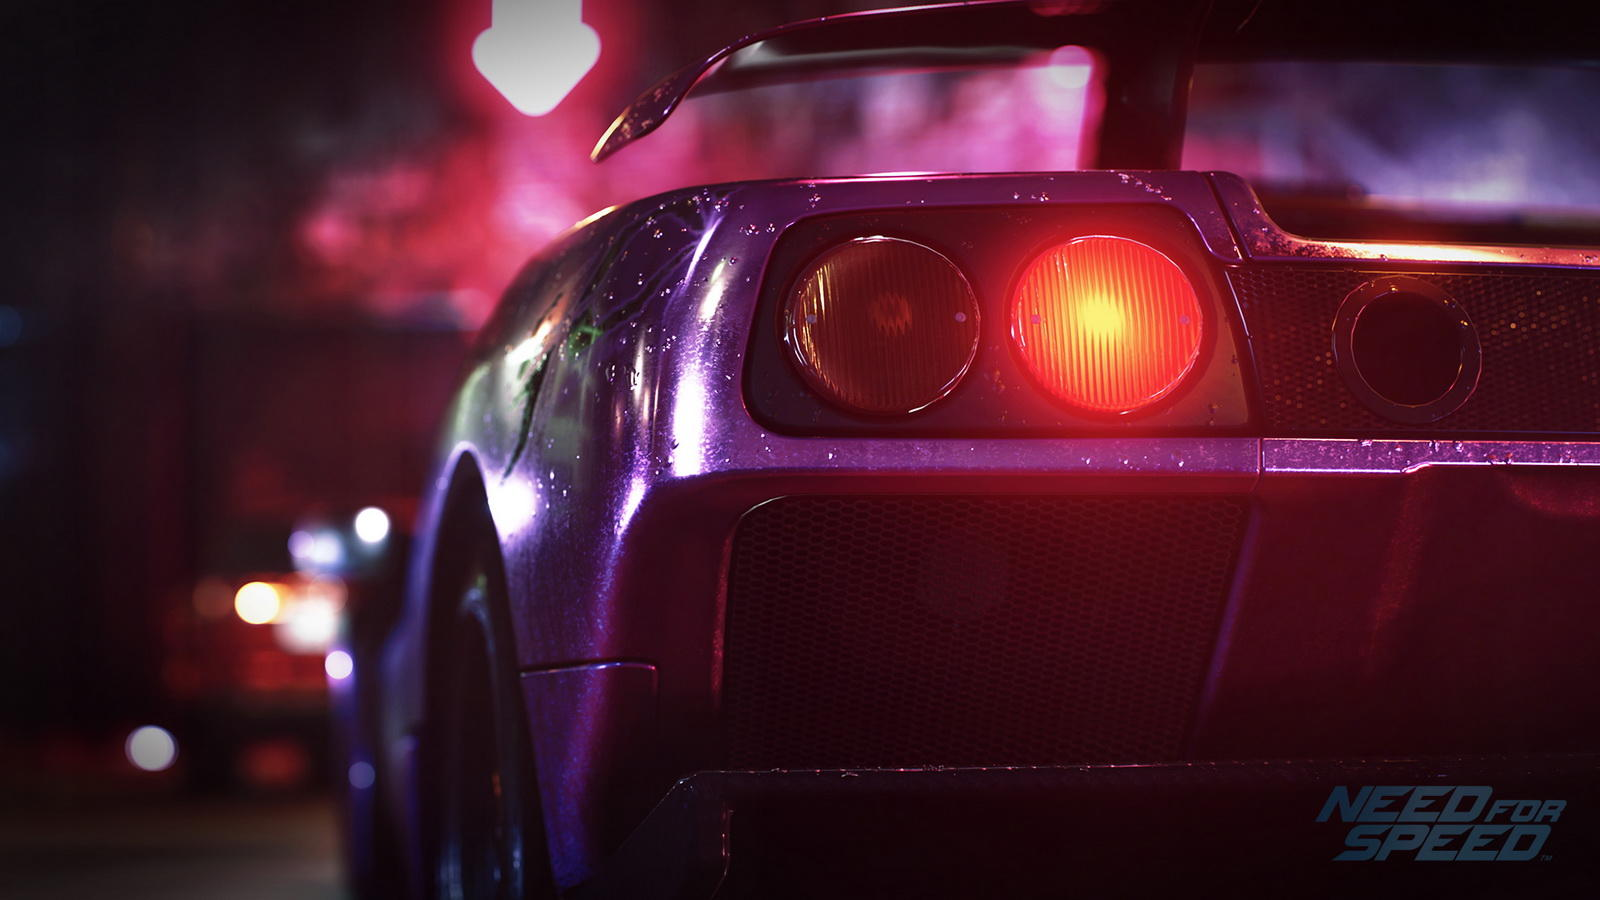 Need for Speed 2015 - Poze - Need for Speed 2015 - Poze